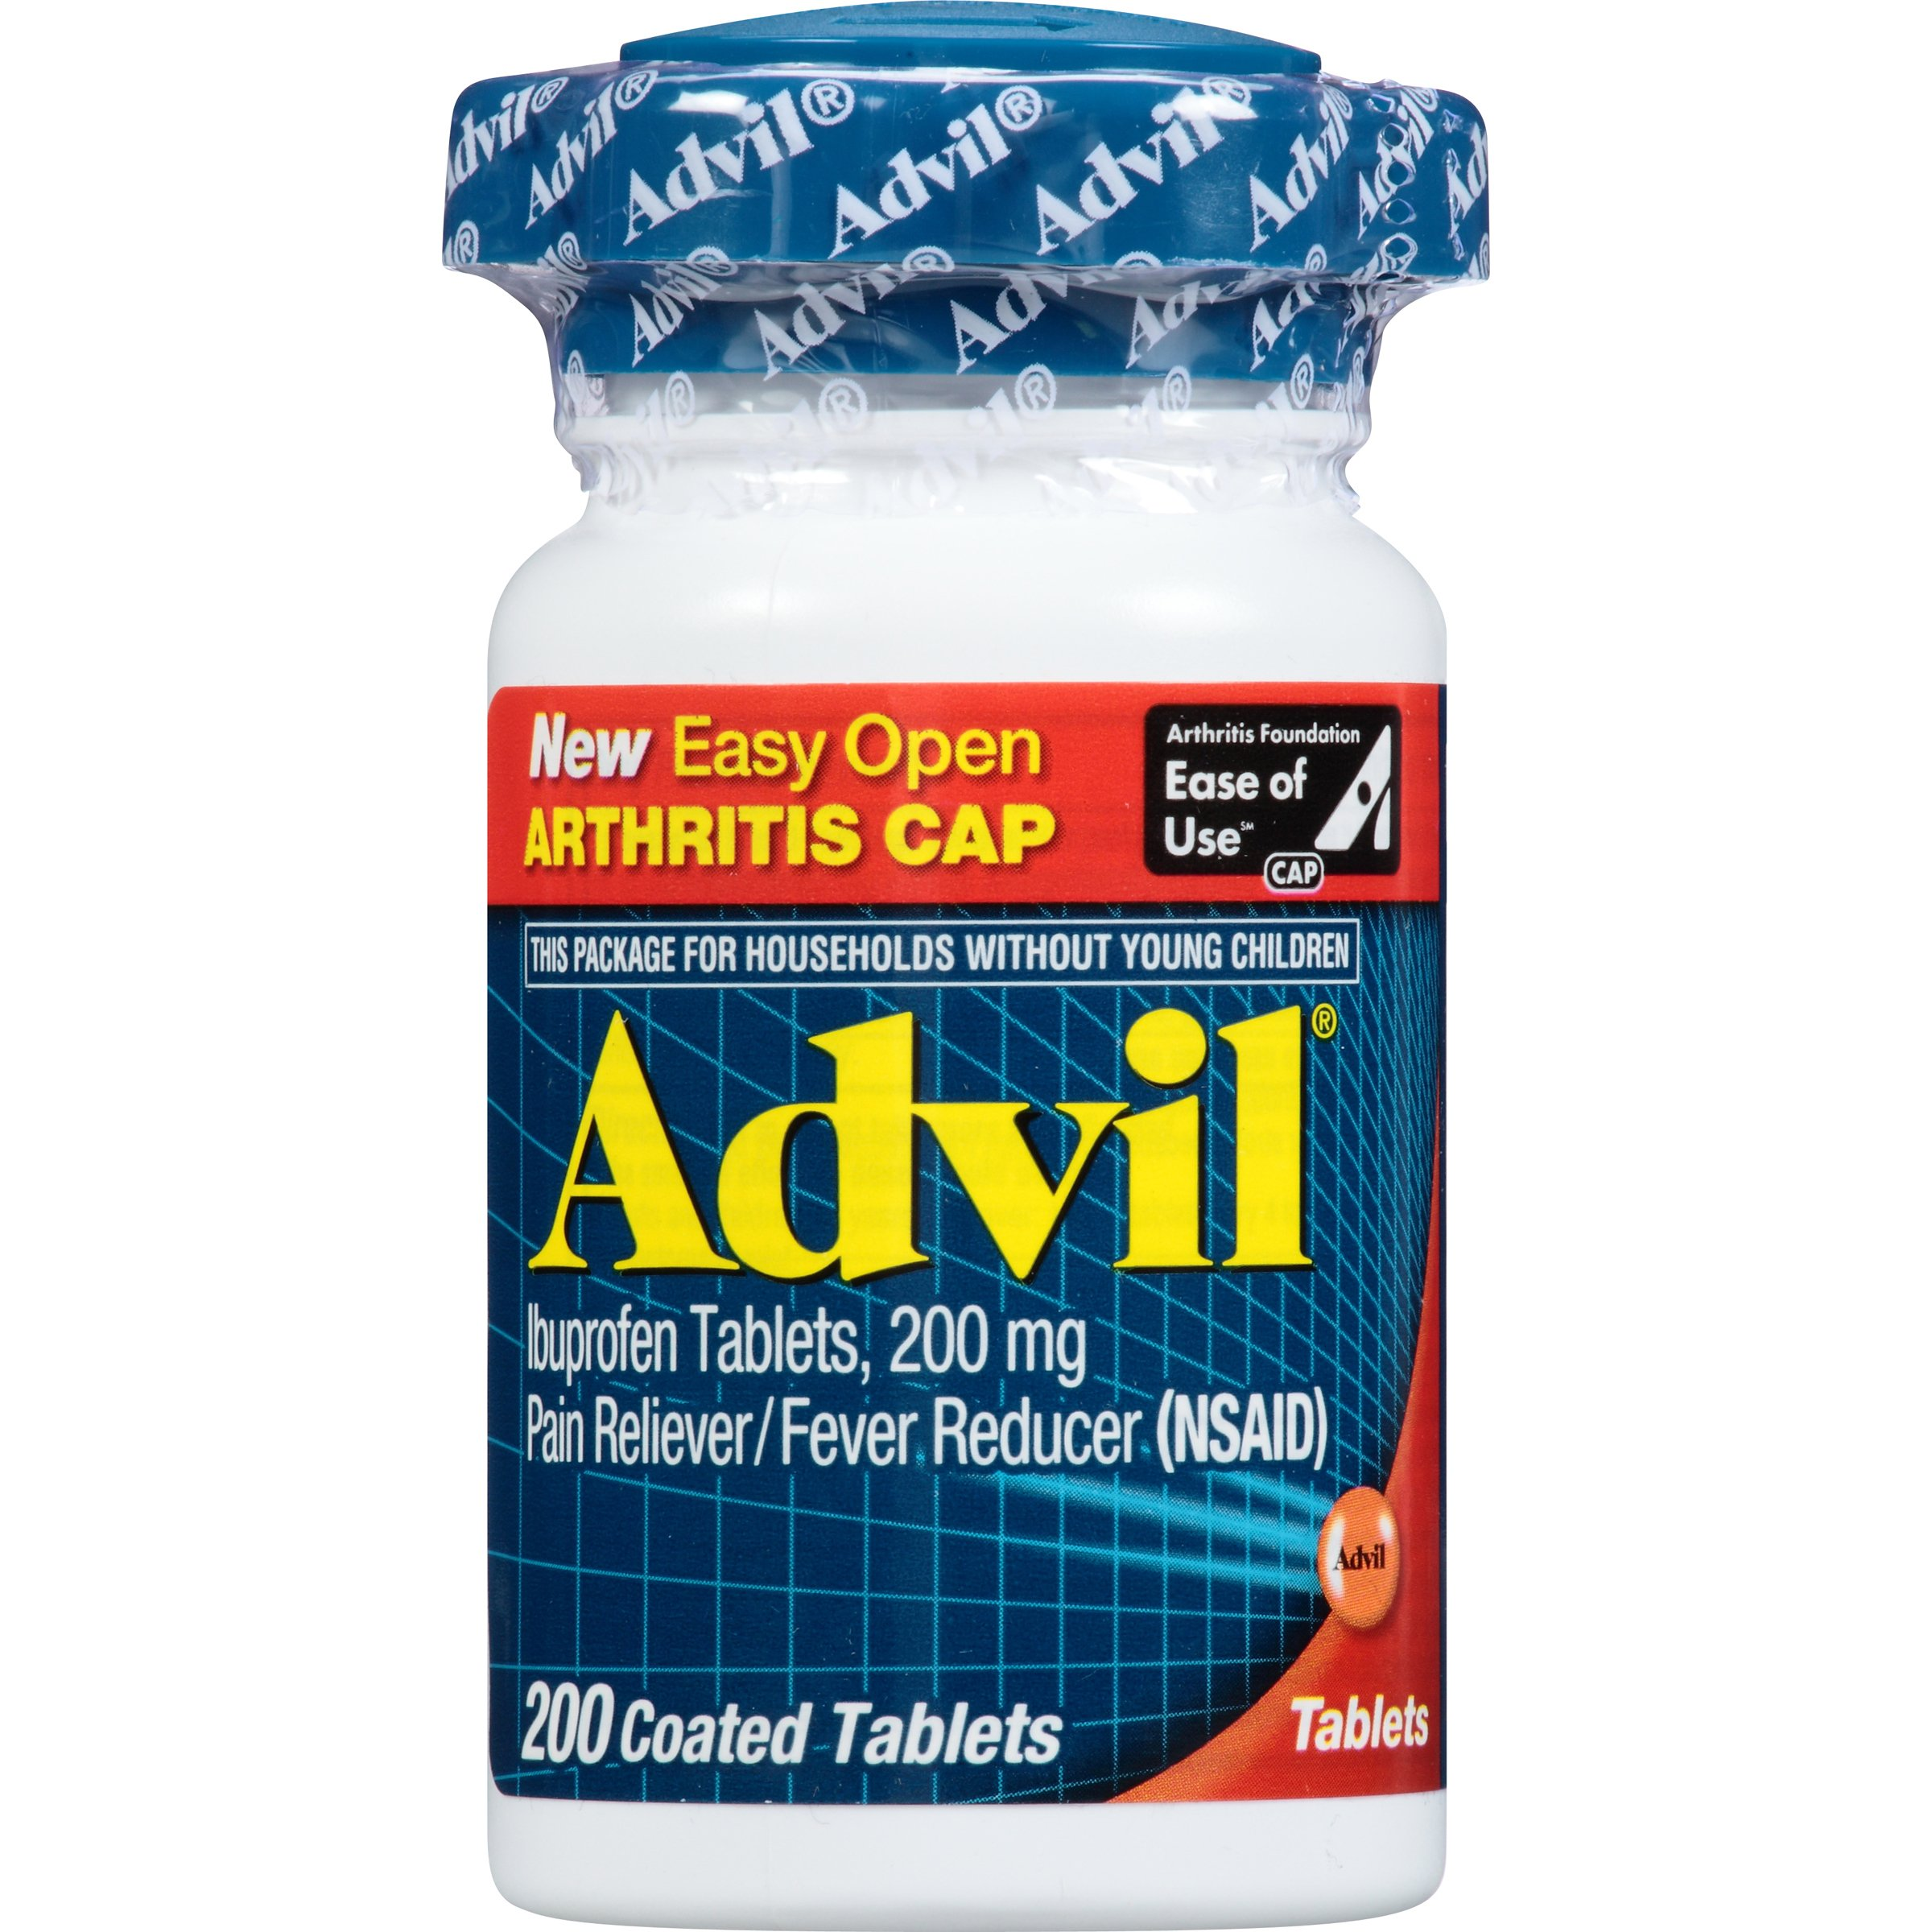 Advil (200 Count) Easy Open Arthritis Cap Pain Reliever / Fever Reducer Coated Tablet, 200mg Ibuprofen, Temporary Pain Relief by Advil